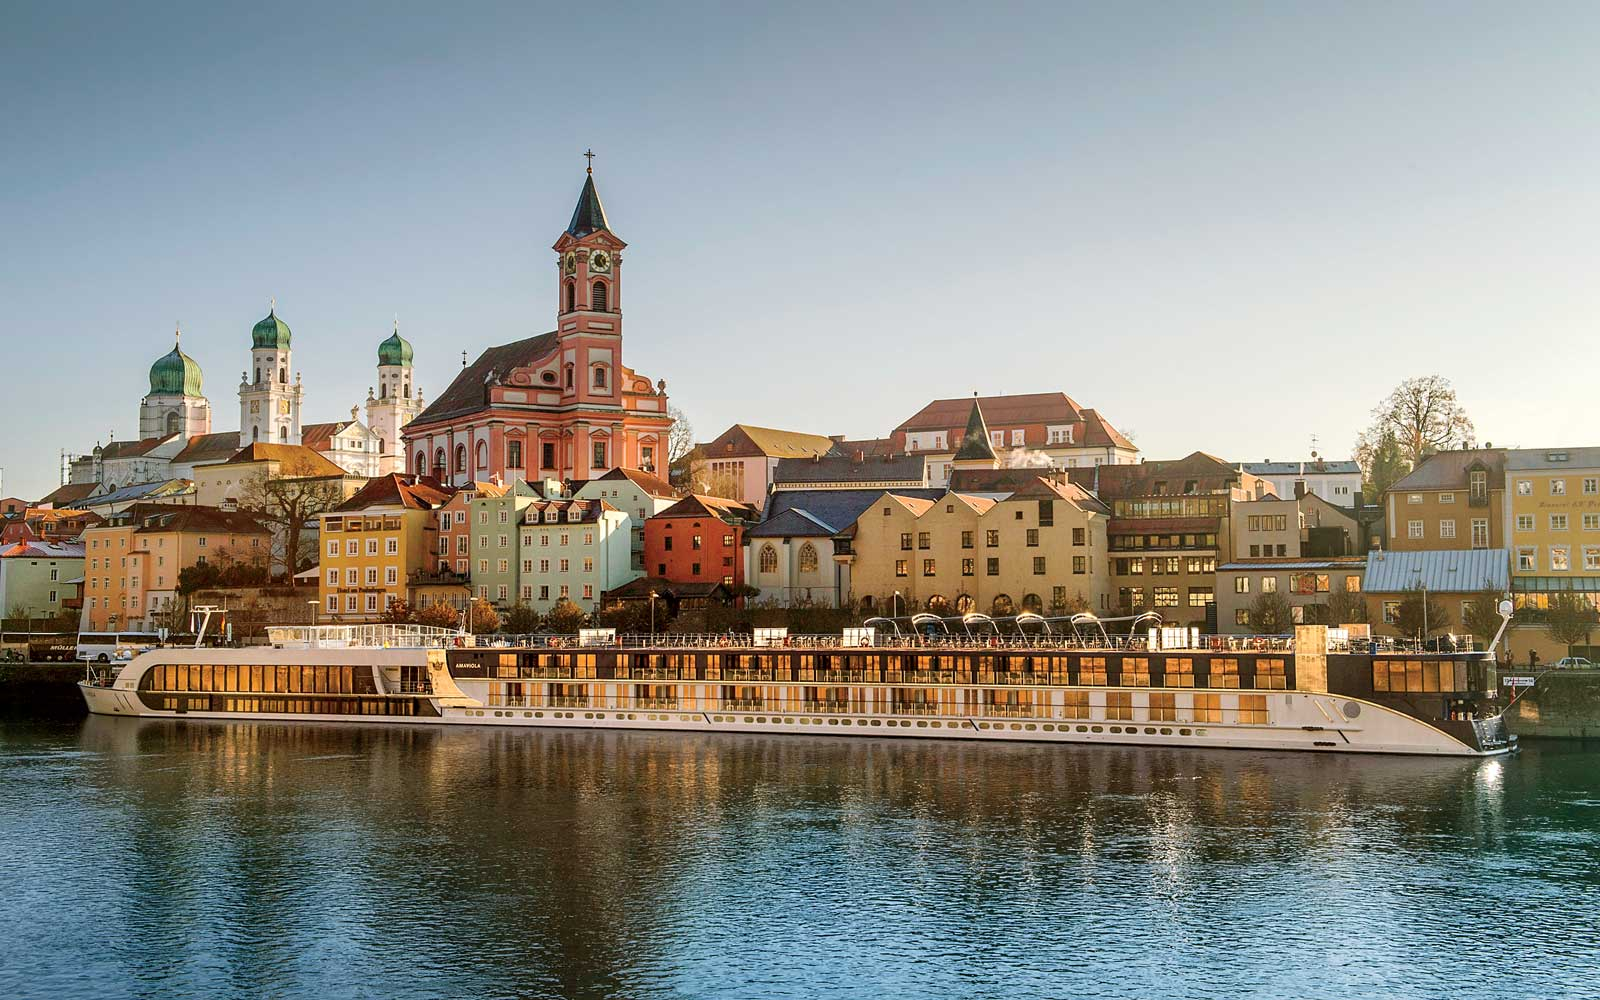 What It's Like to Cruise Down the Danube River